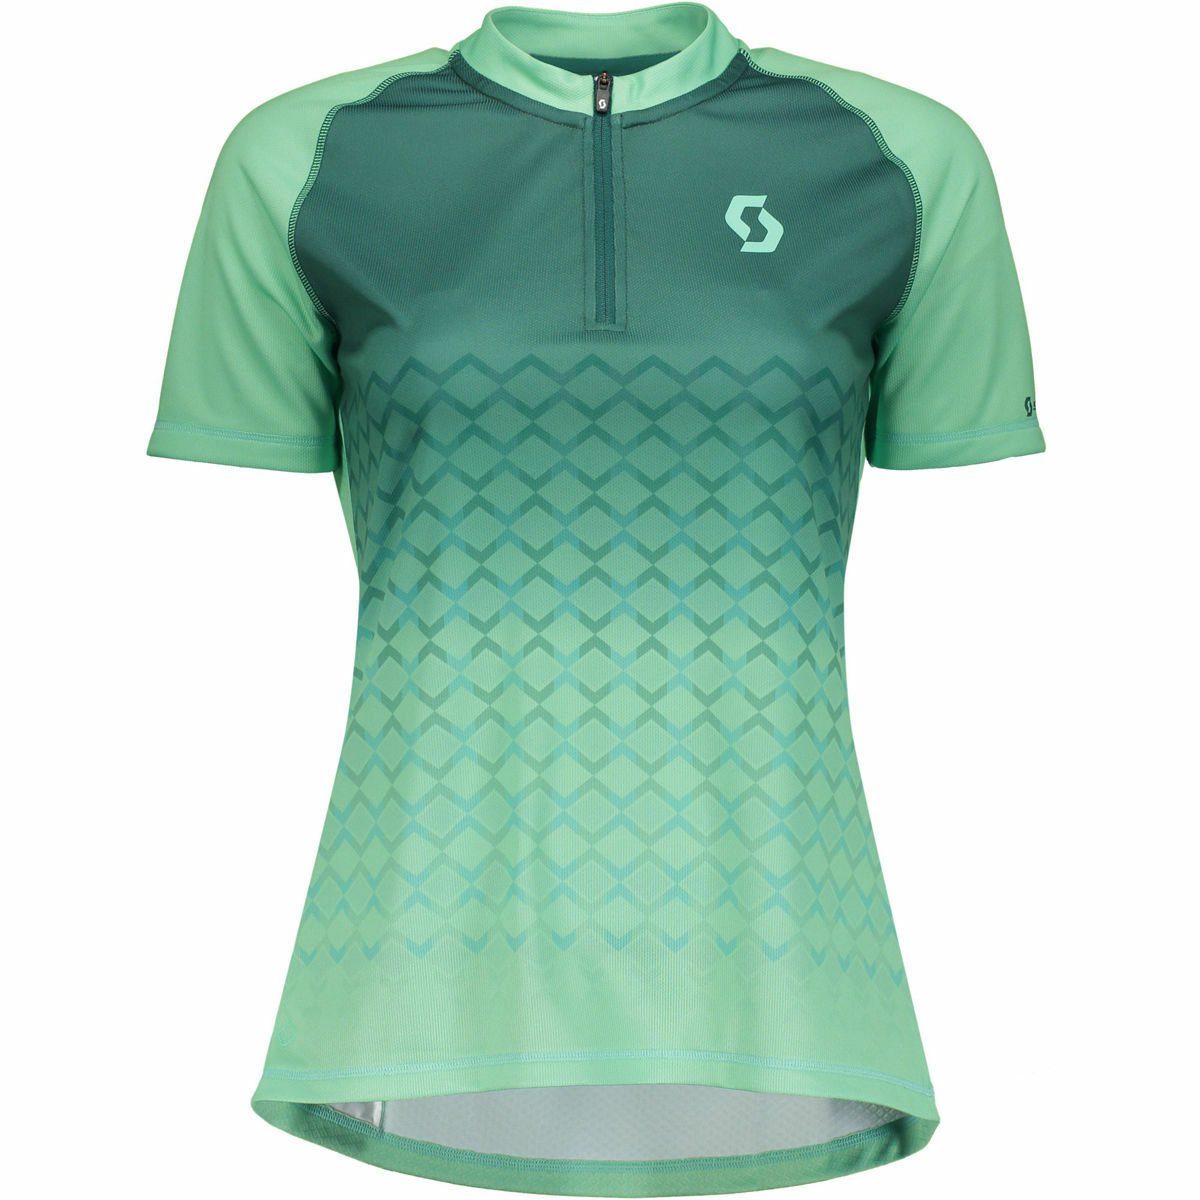 MAGLIA CICLISMO women SCOTT SHIRT W'S TRAIL 10 S SL color green taglia M